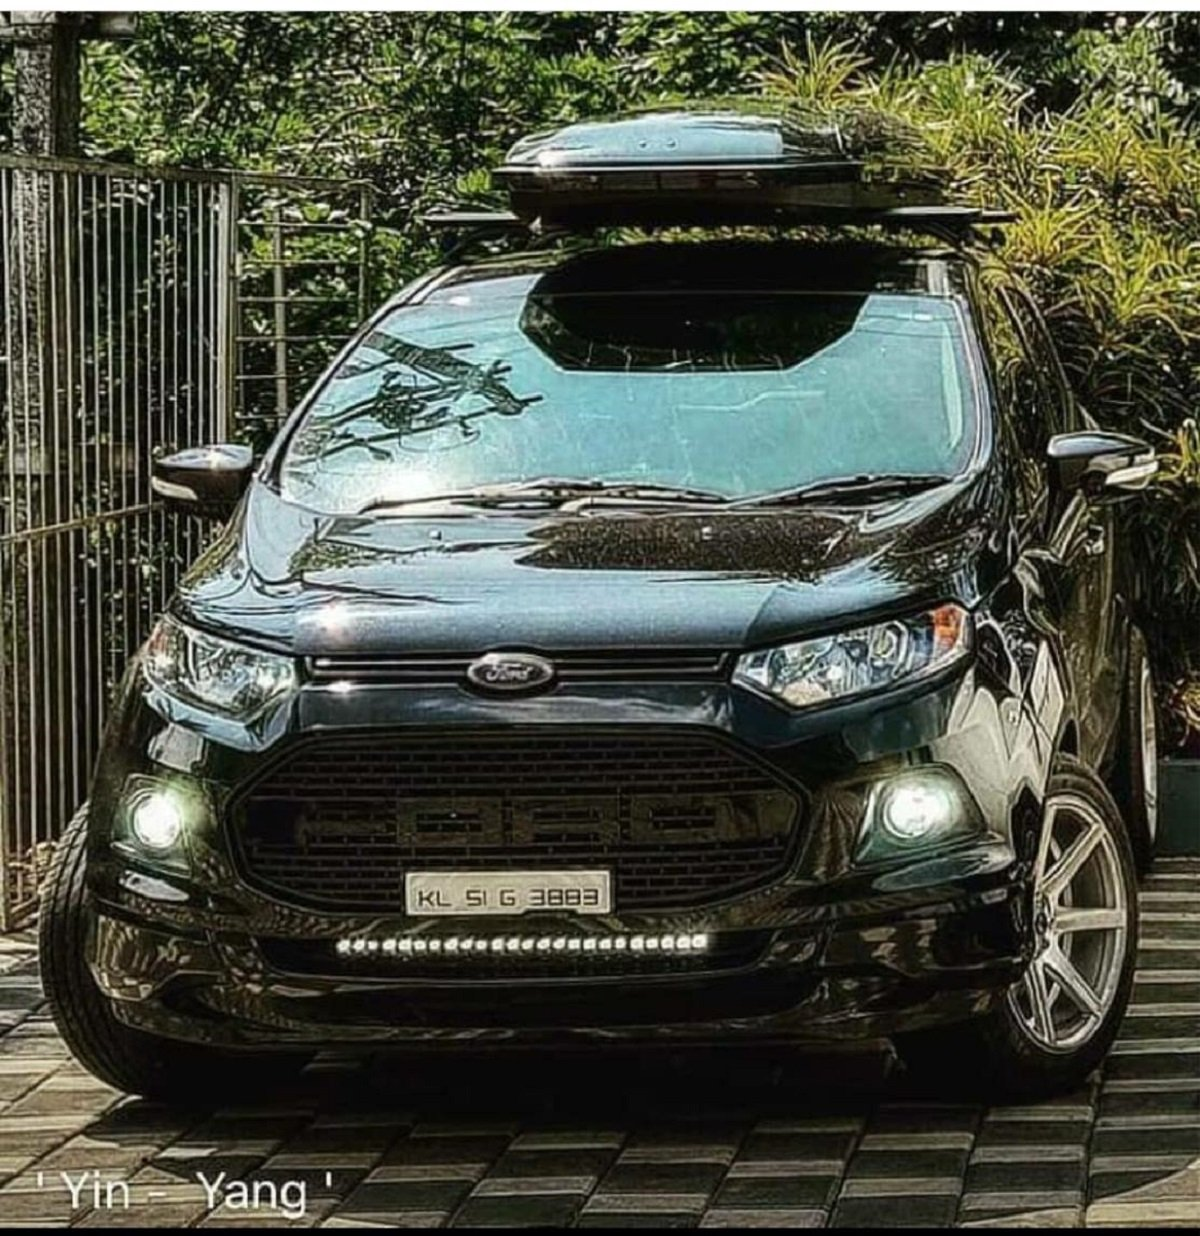 Black Panther – Lowered Ford Ecosport With Underbelly Headers and Exhaust